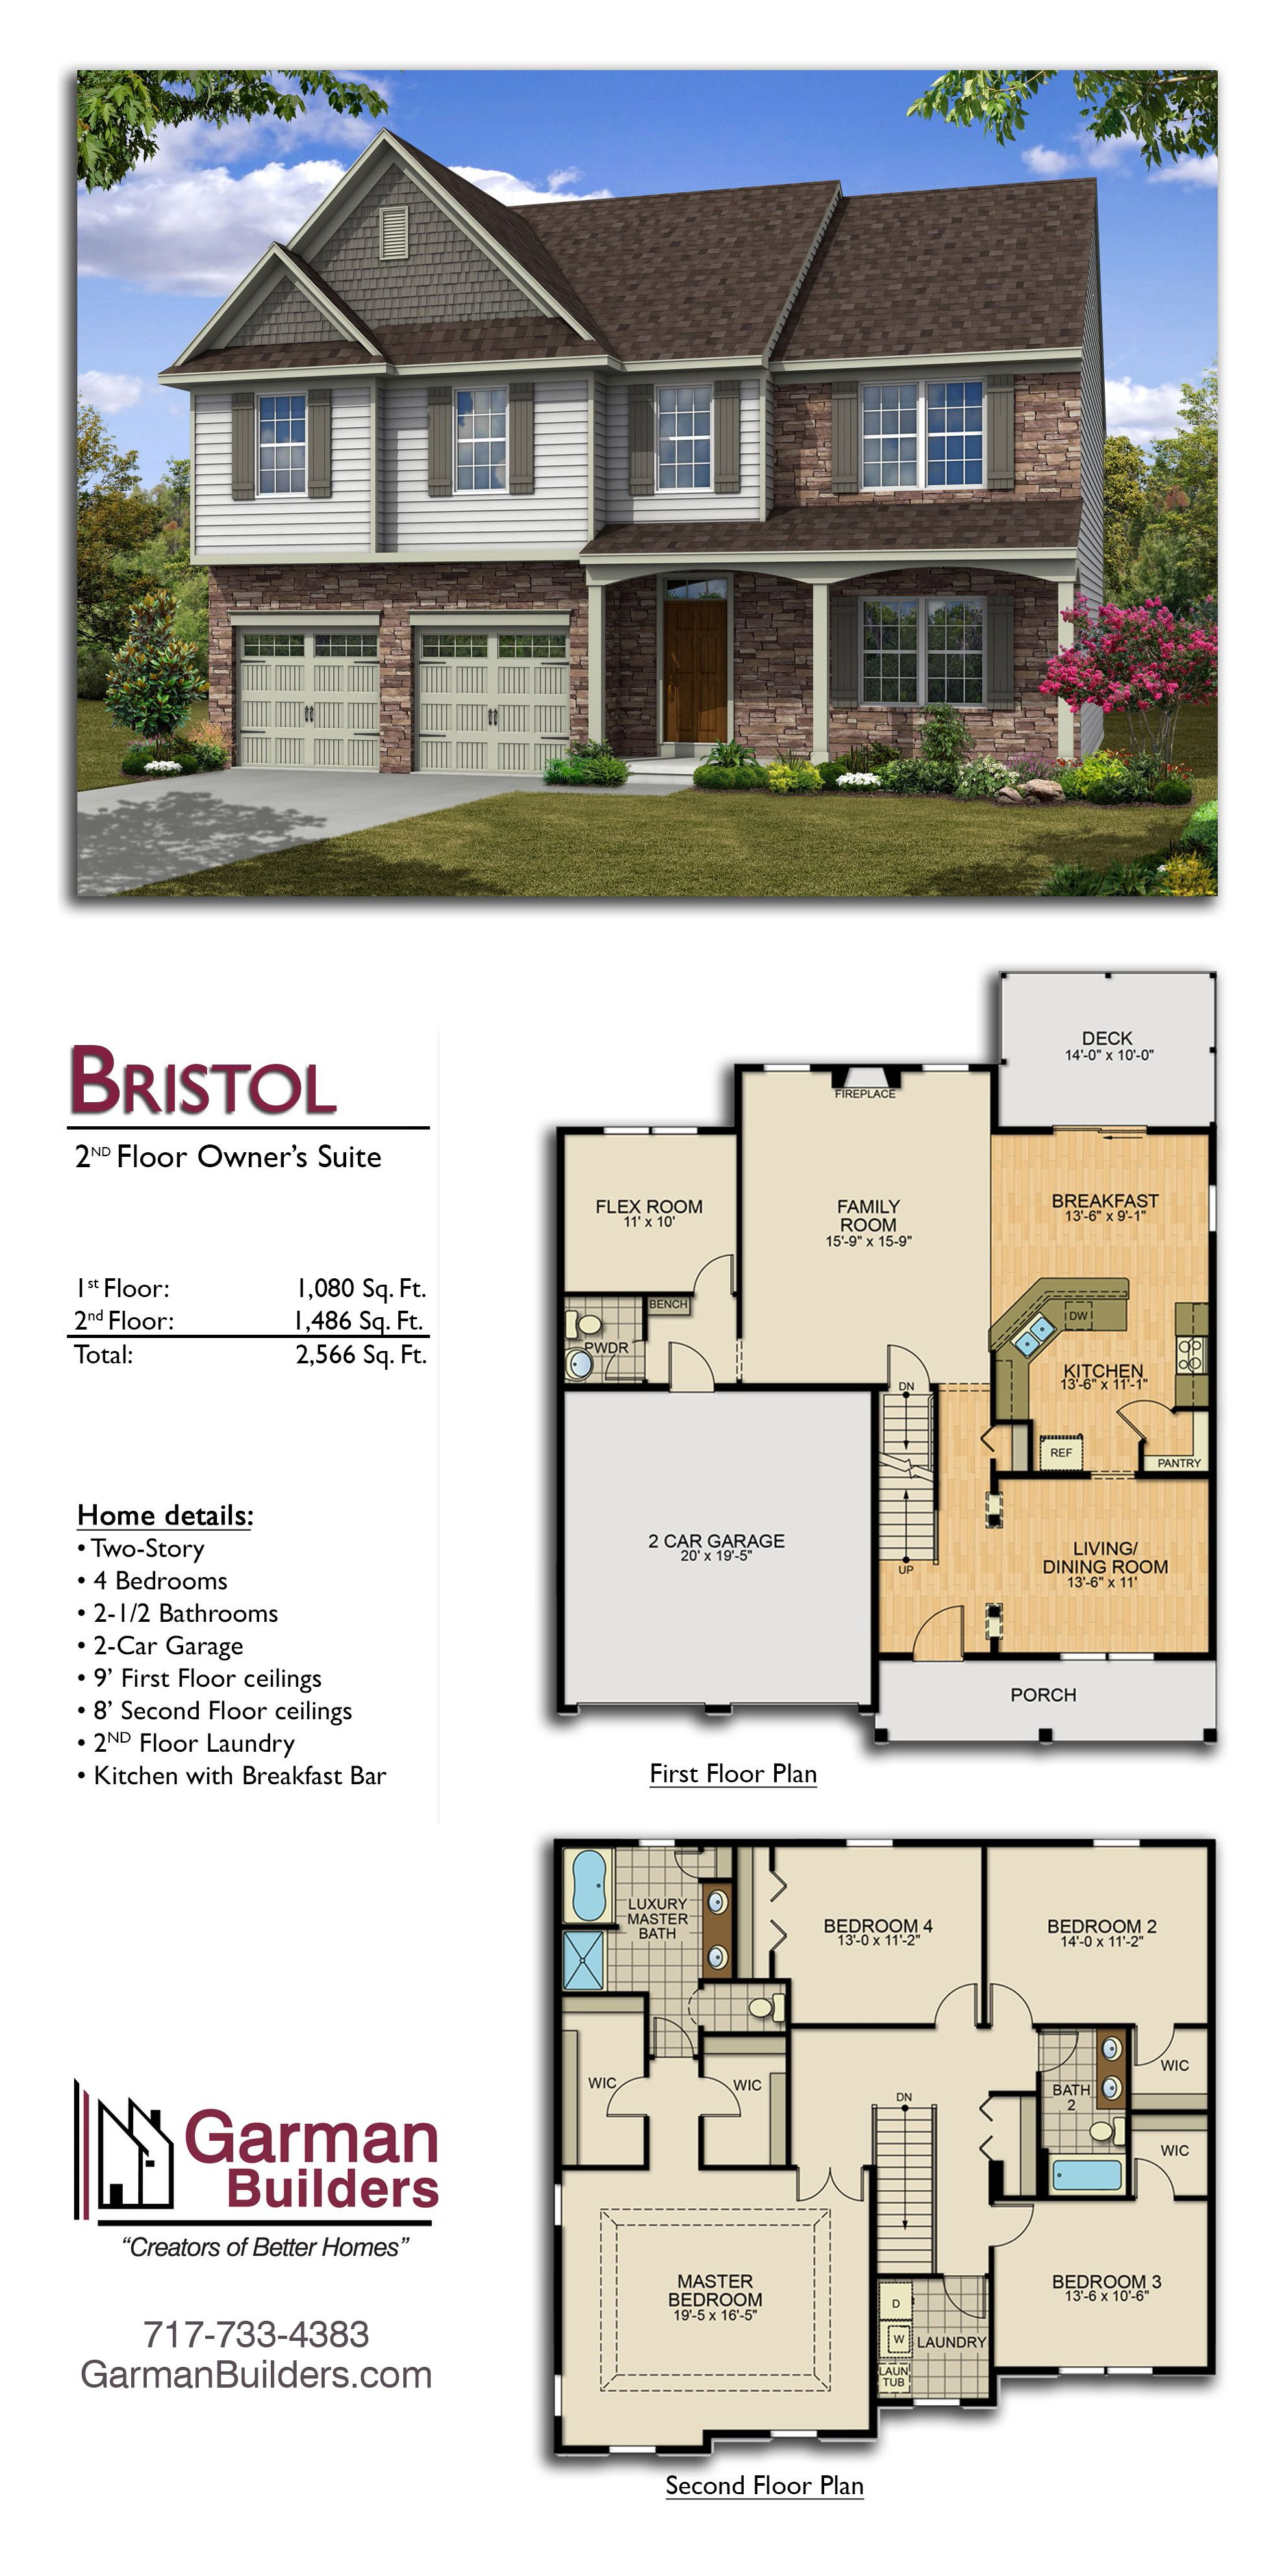 The Bristol Floor Plan By Garman Builders 4 Bdrms 2 5 Baths 2 Stories 2 Car Garage 2 566 Sq Ft Sims House Design Floor Plans House Blueprints